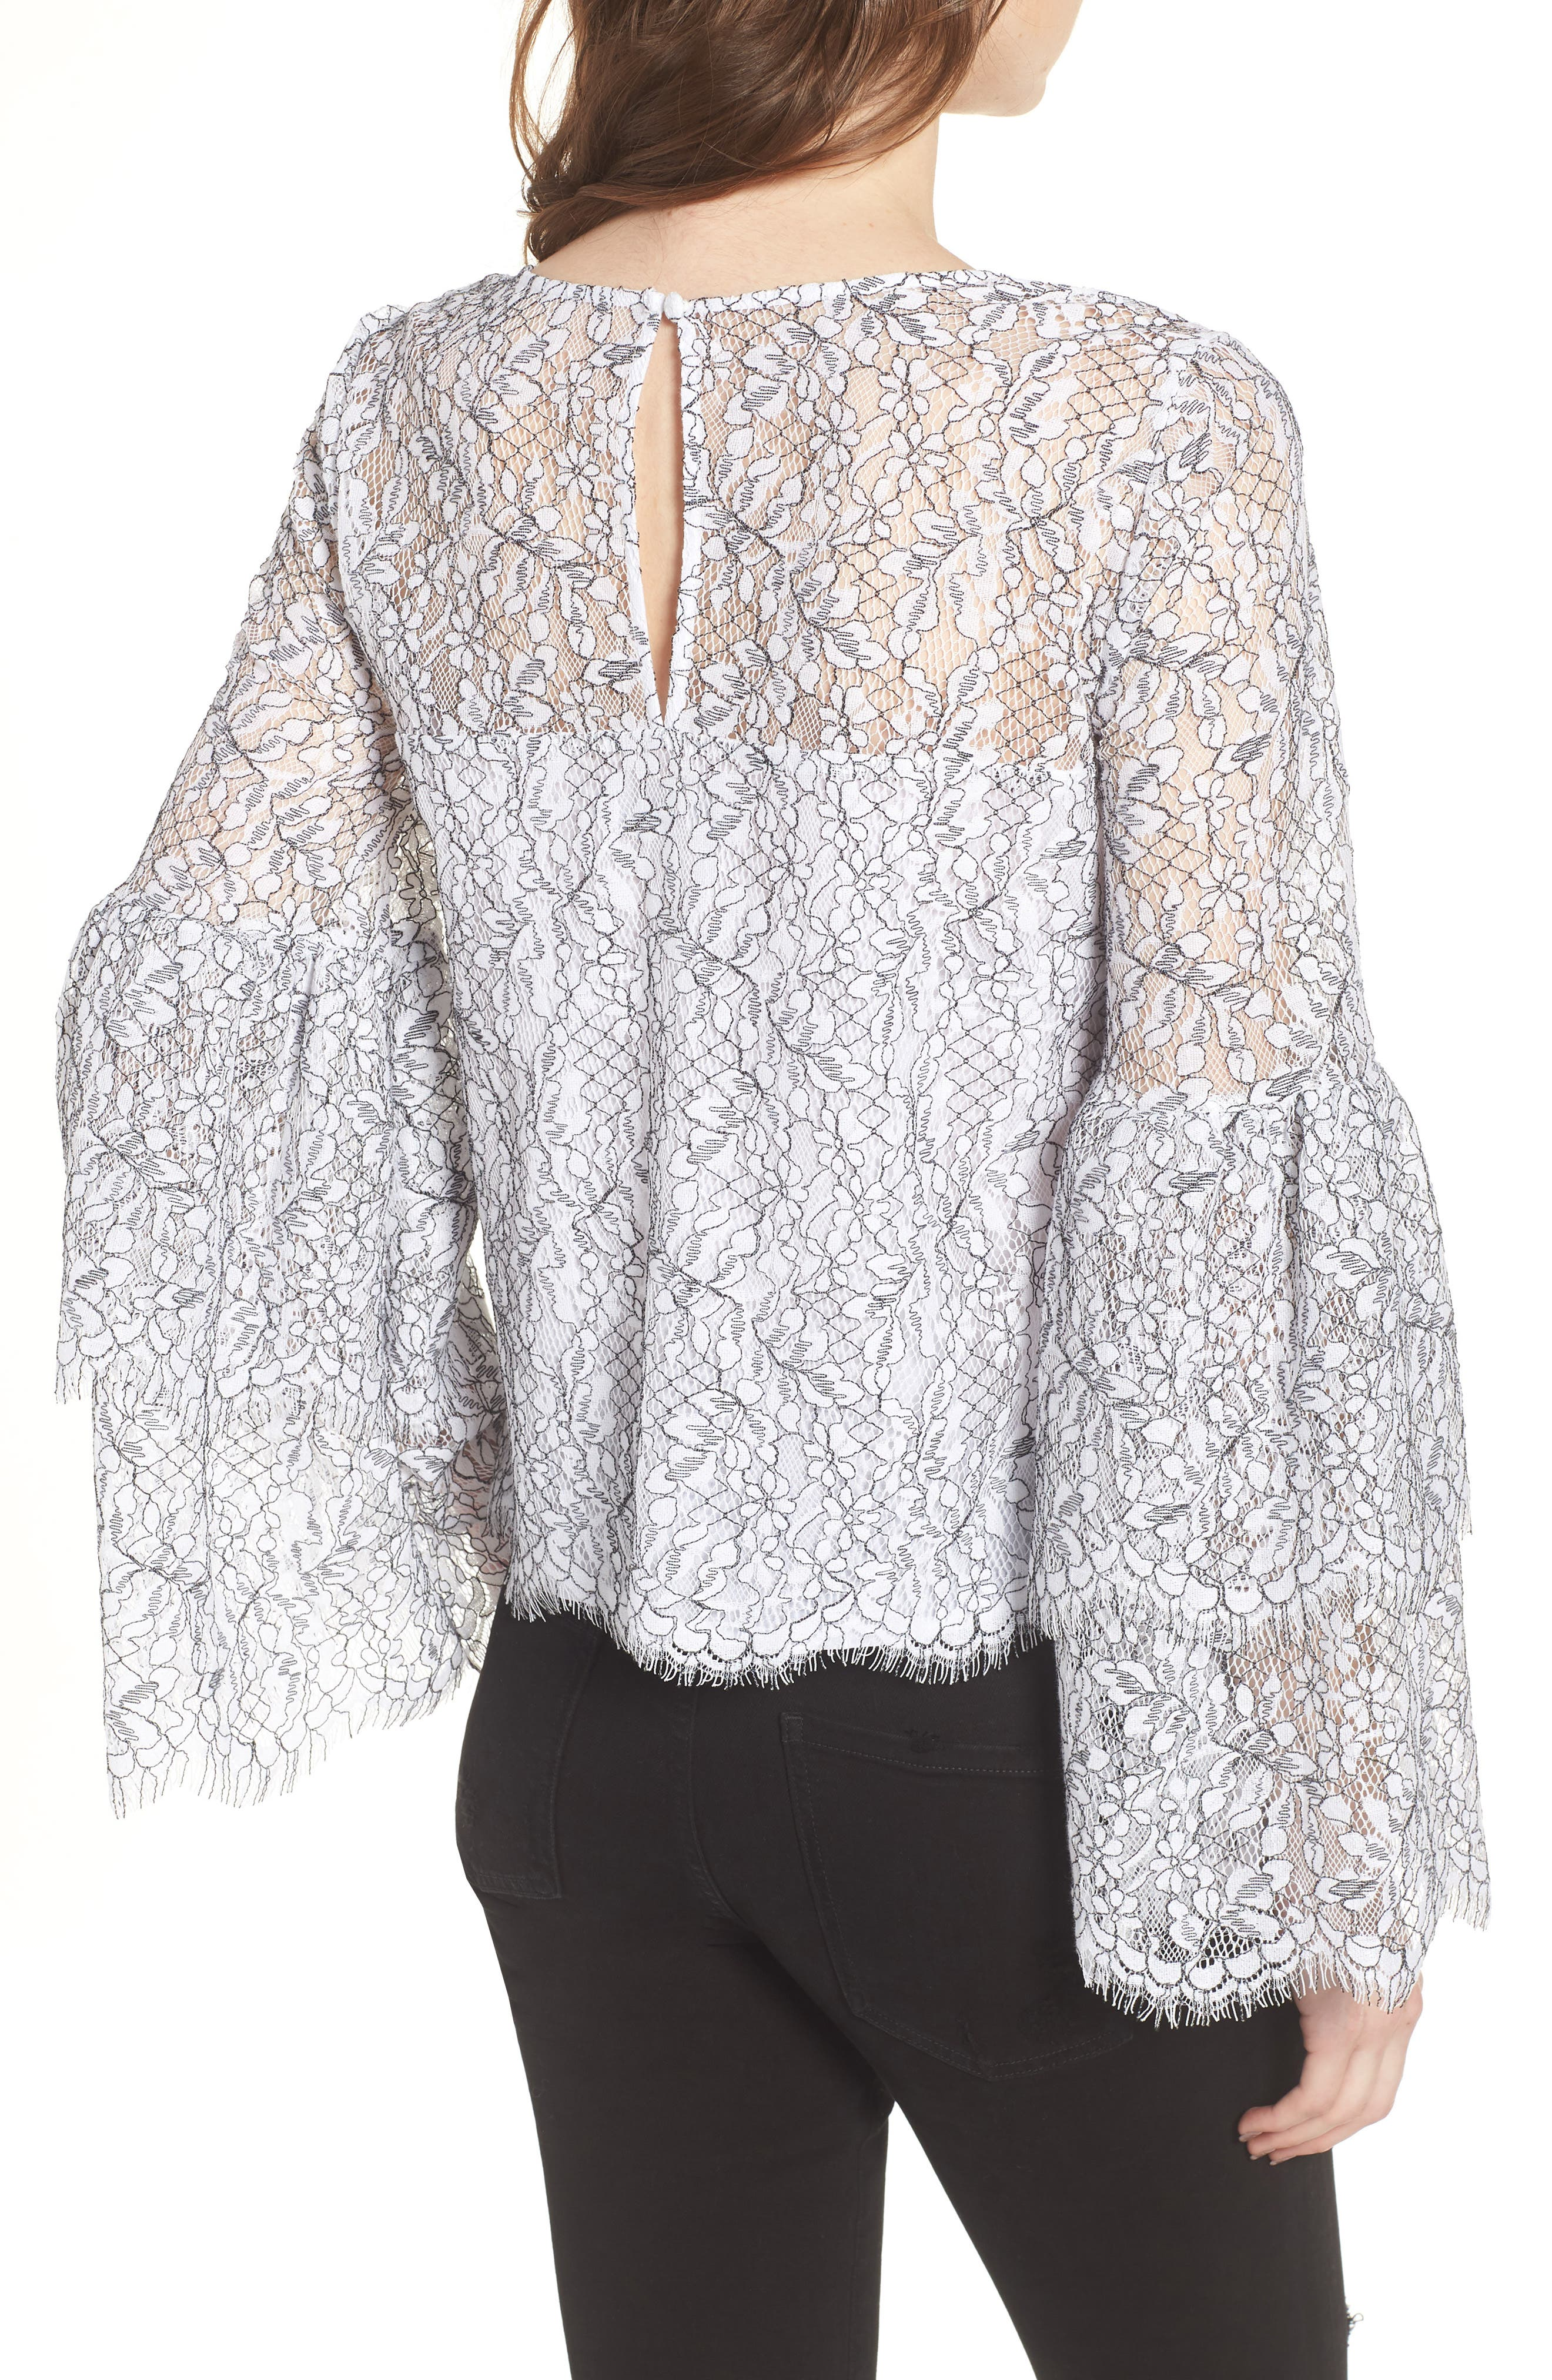 Basswood Lace Top,                             Alternate thumbnail 2, color,                             Ivory